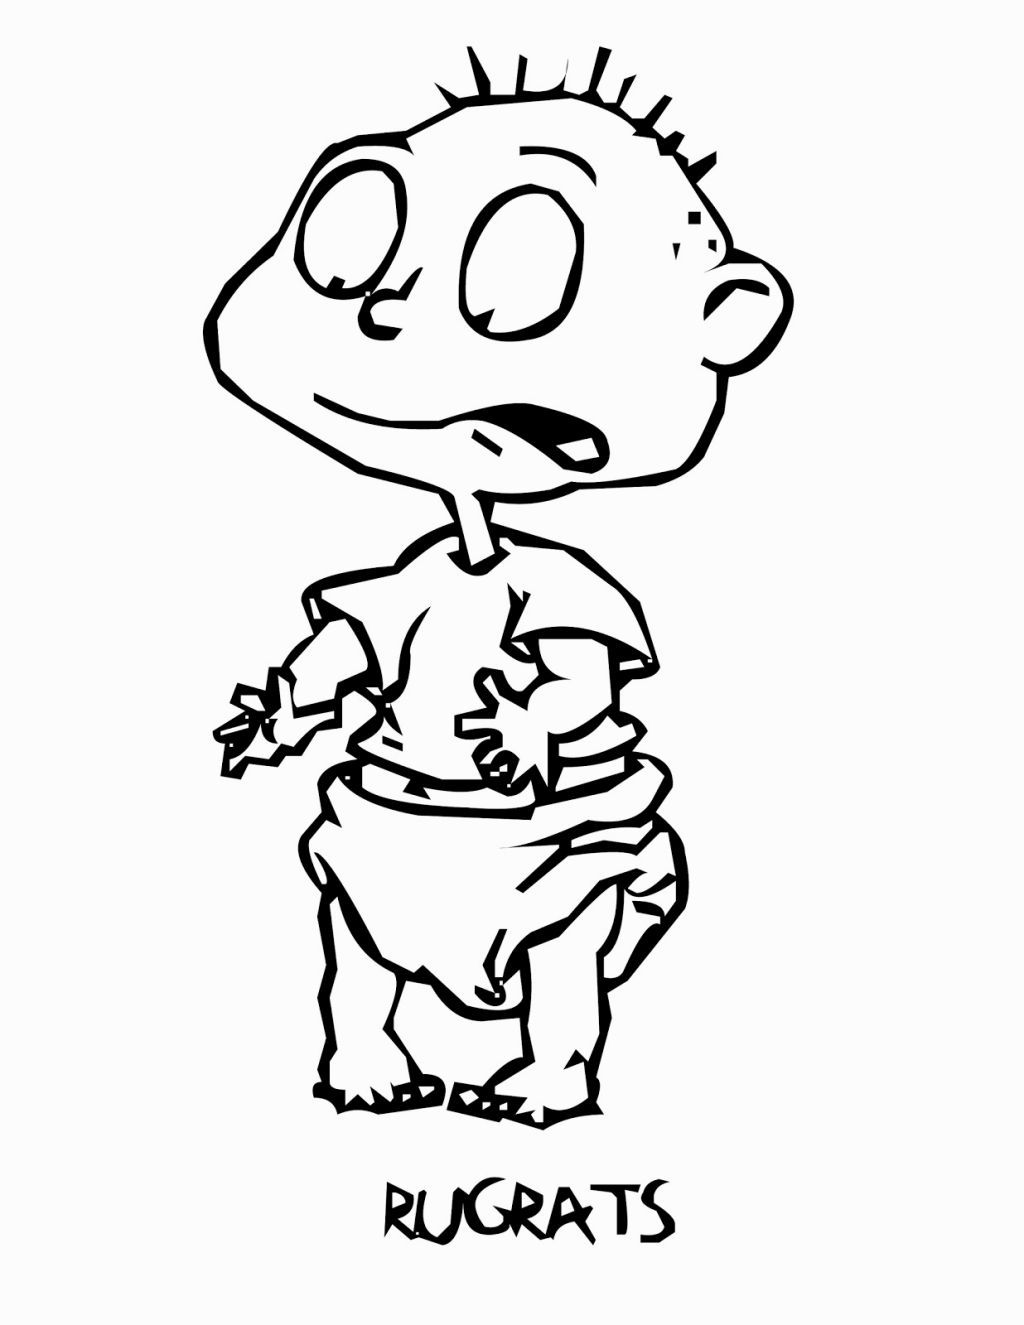 Rugrats Coloring Book   Coloring Pages   Pinterest   Rugrats and ...